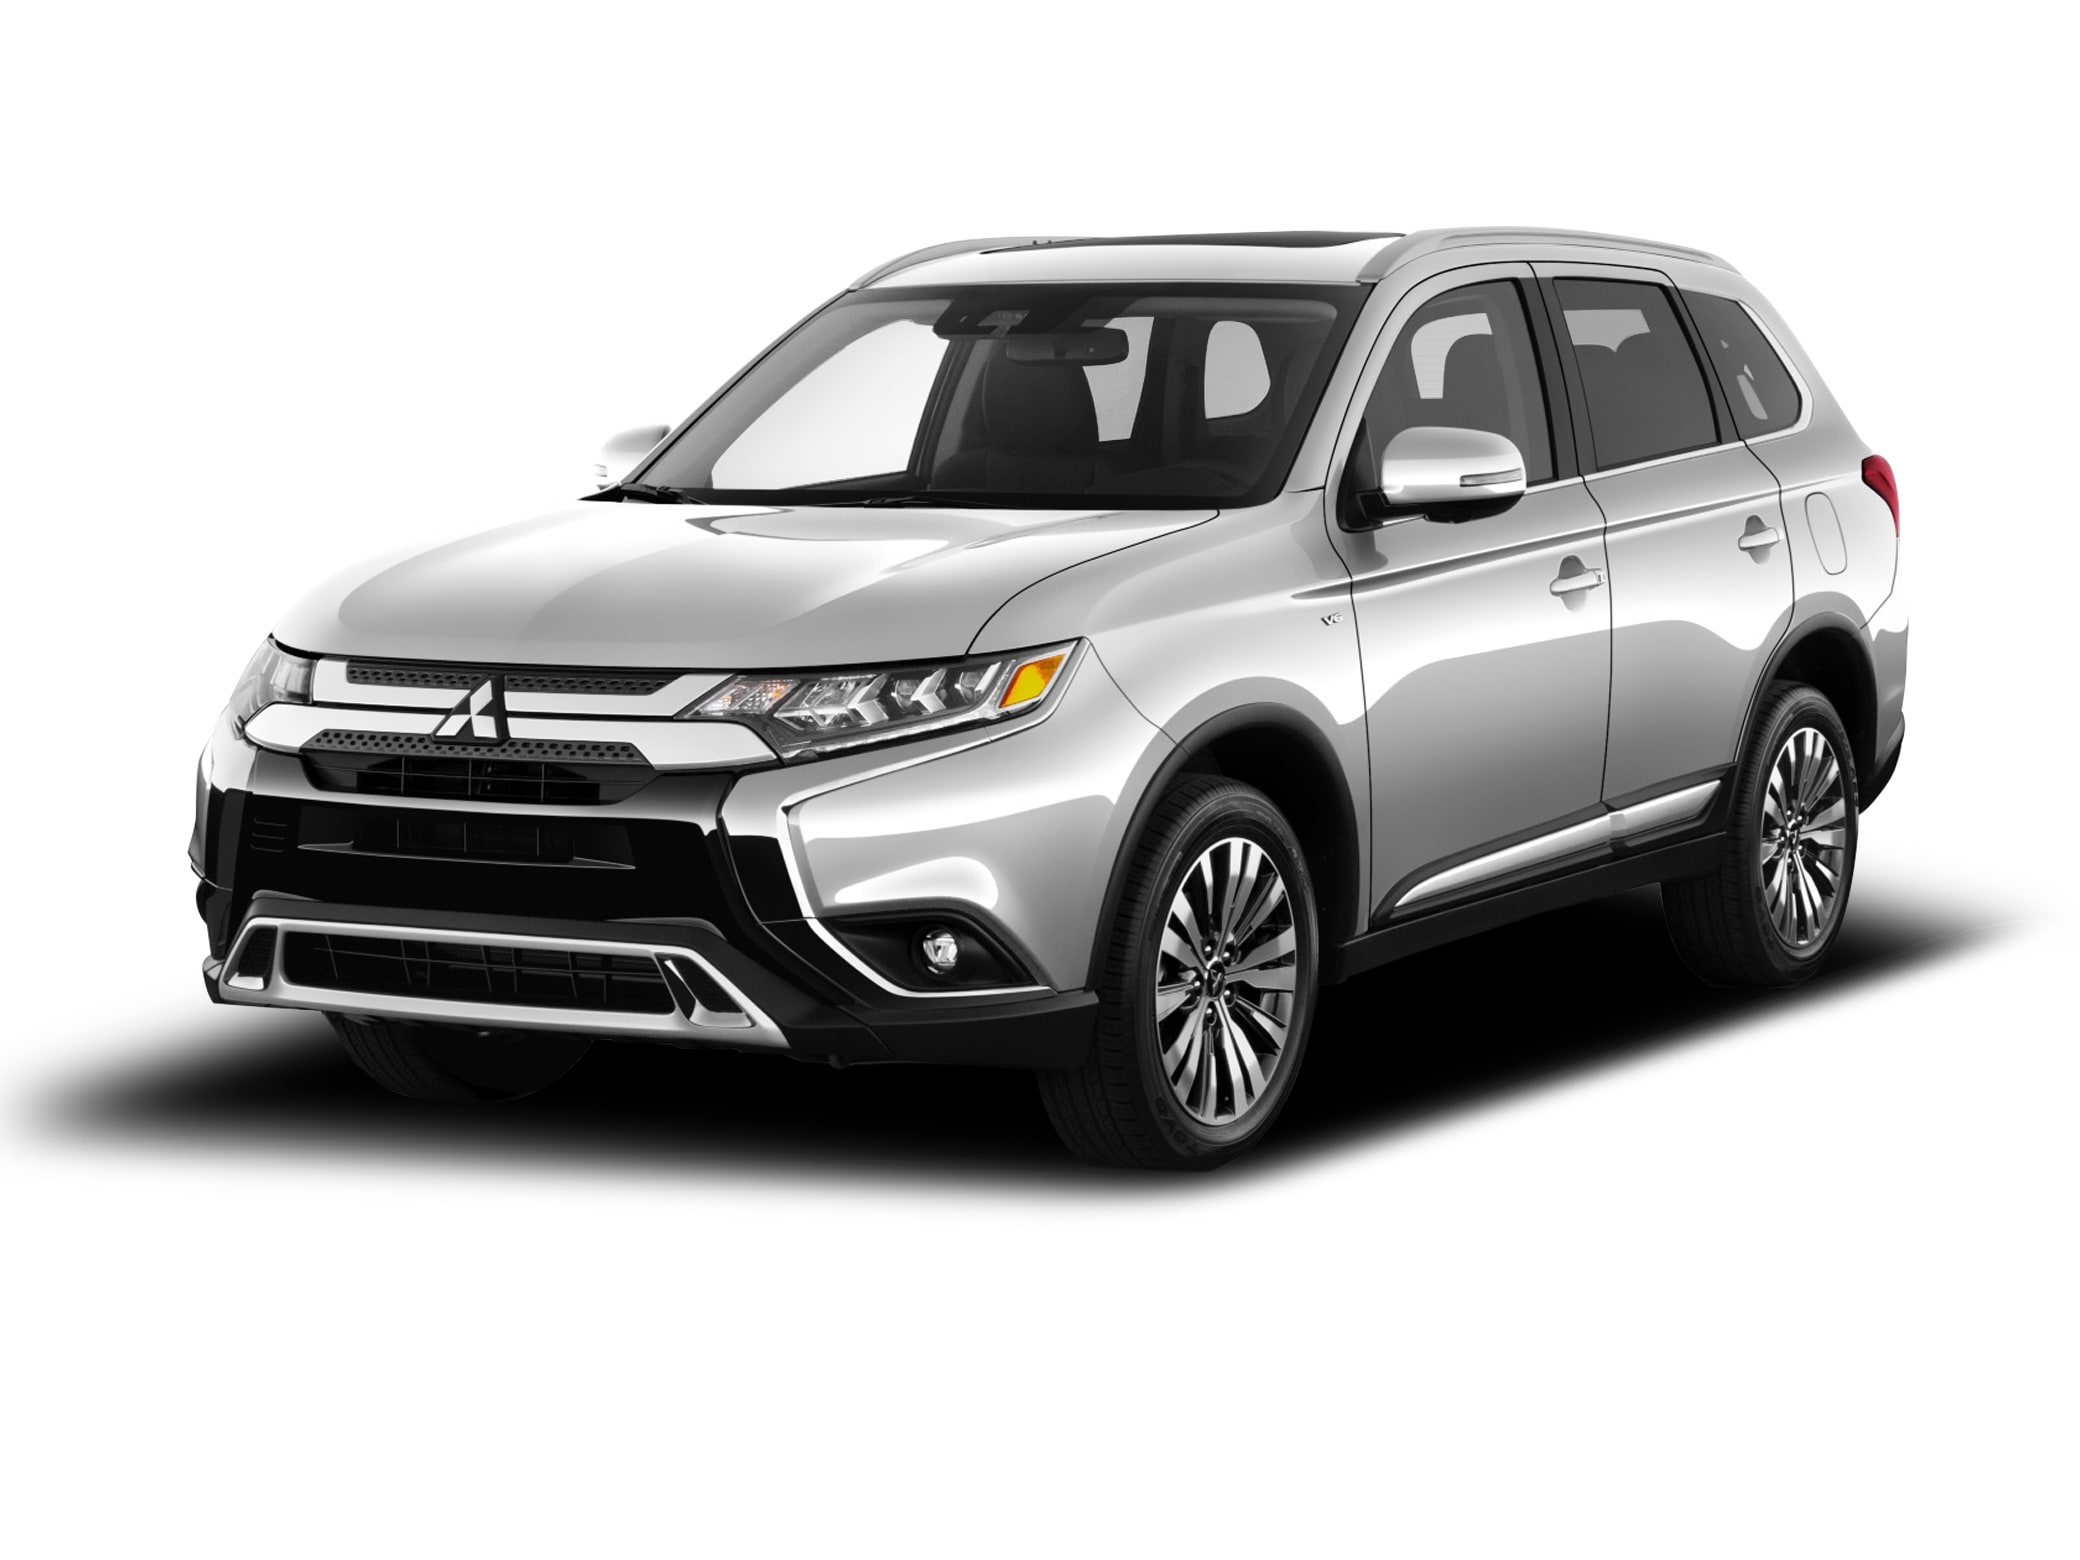 Cuv Car 2019 Mitsubishi Outlander Cuv Digital Showroom City Mitsubishi